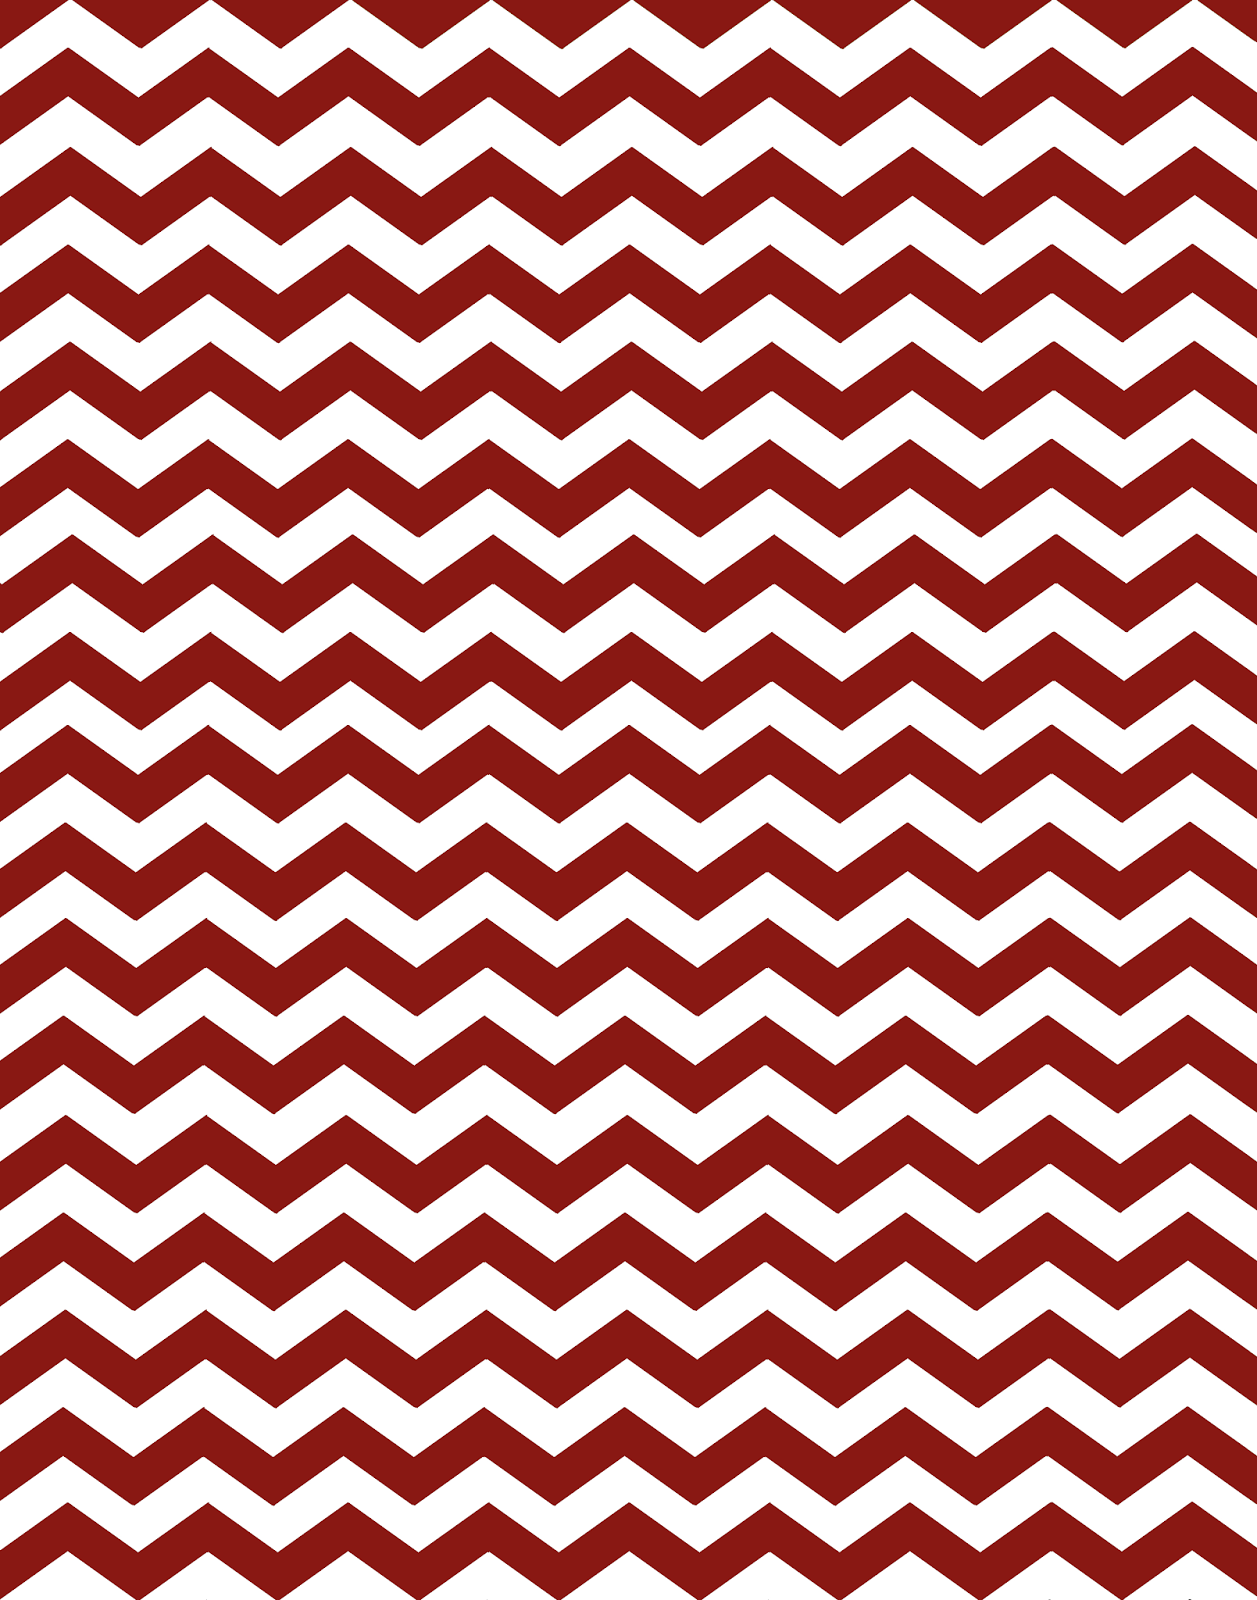 49 Red Chevron Wallpaper On Wallpapersafari